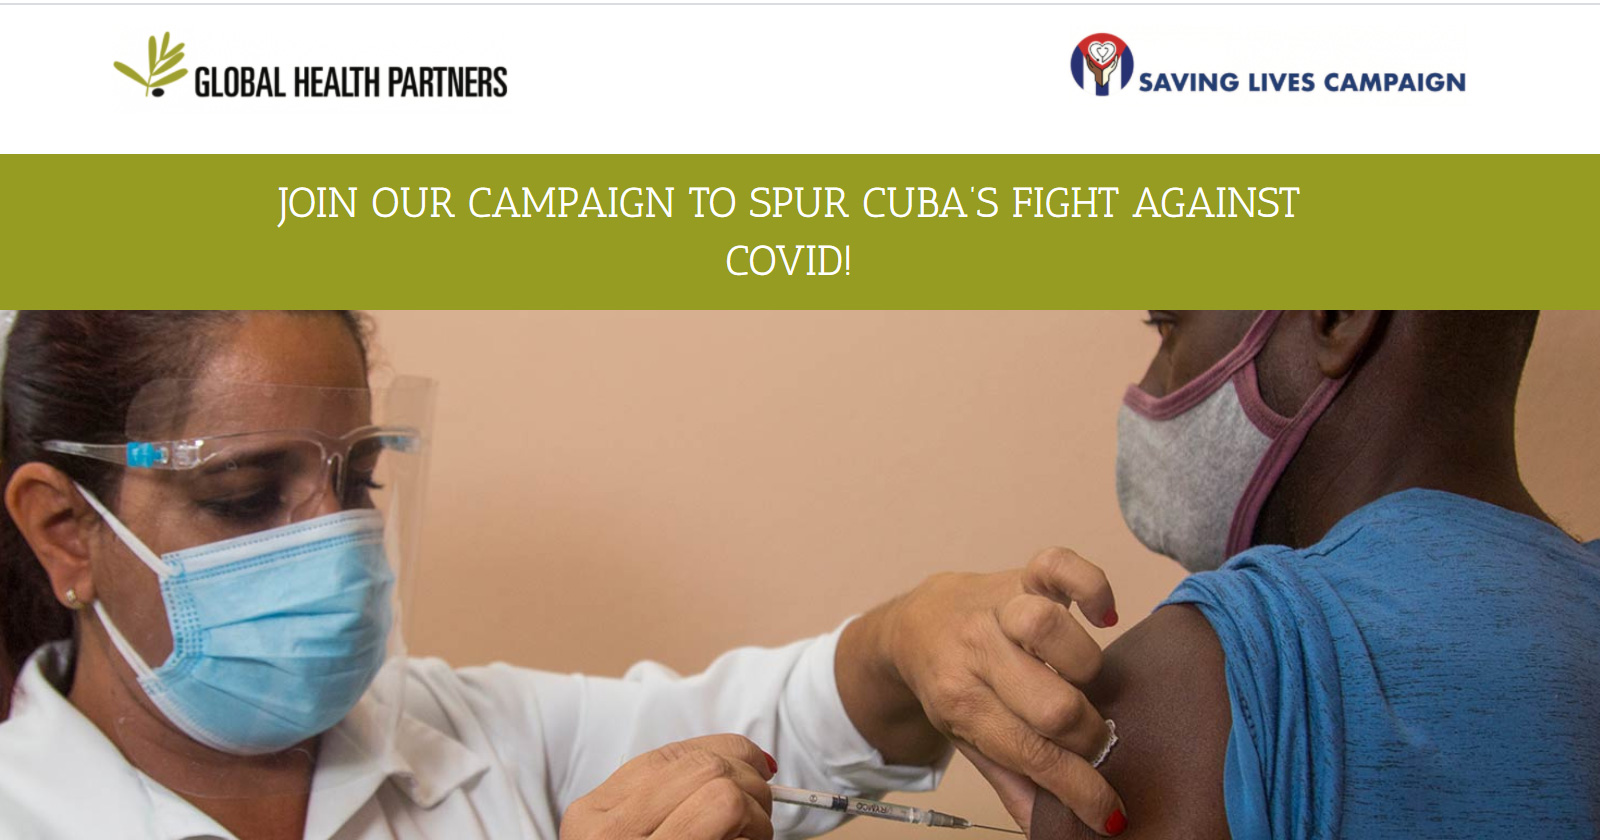 JOIN OUR CAMPAIGN TO SPUR CUBA'S FIGHT AGAINST COVID!